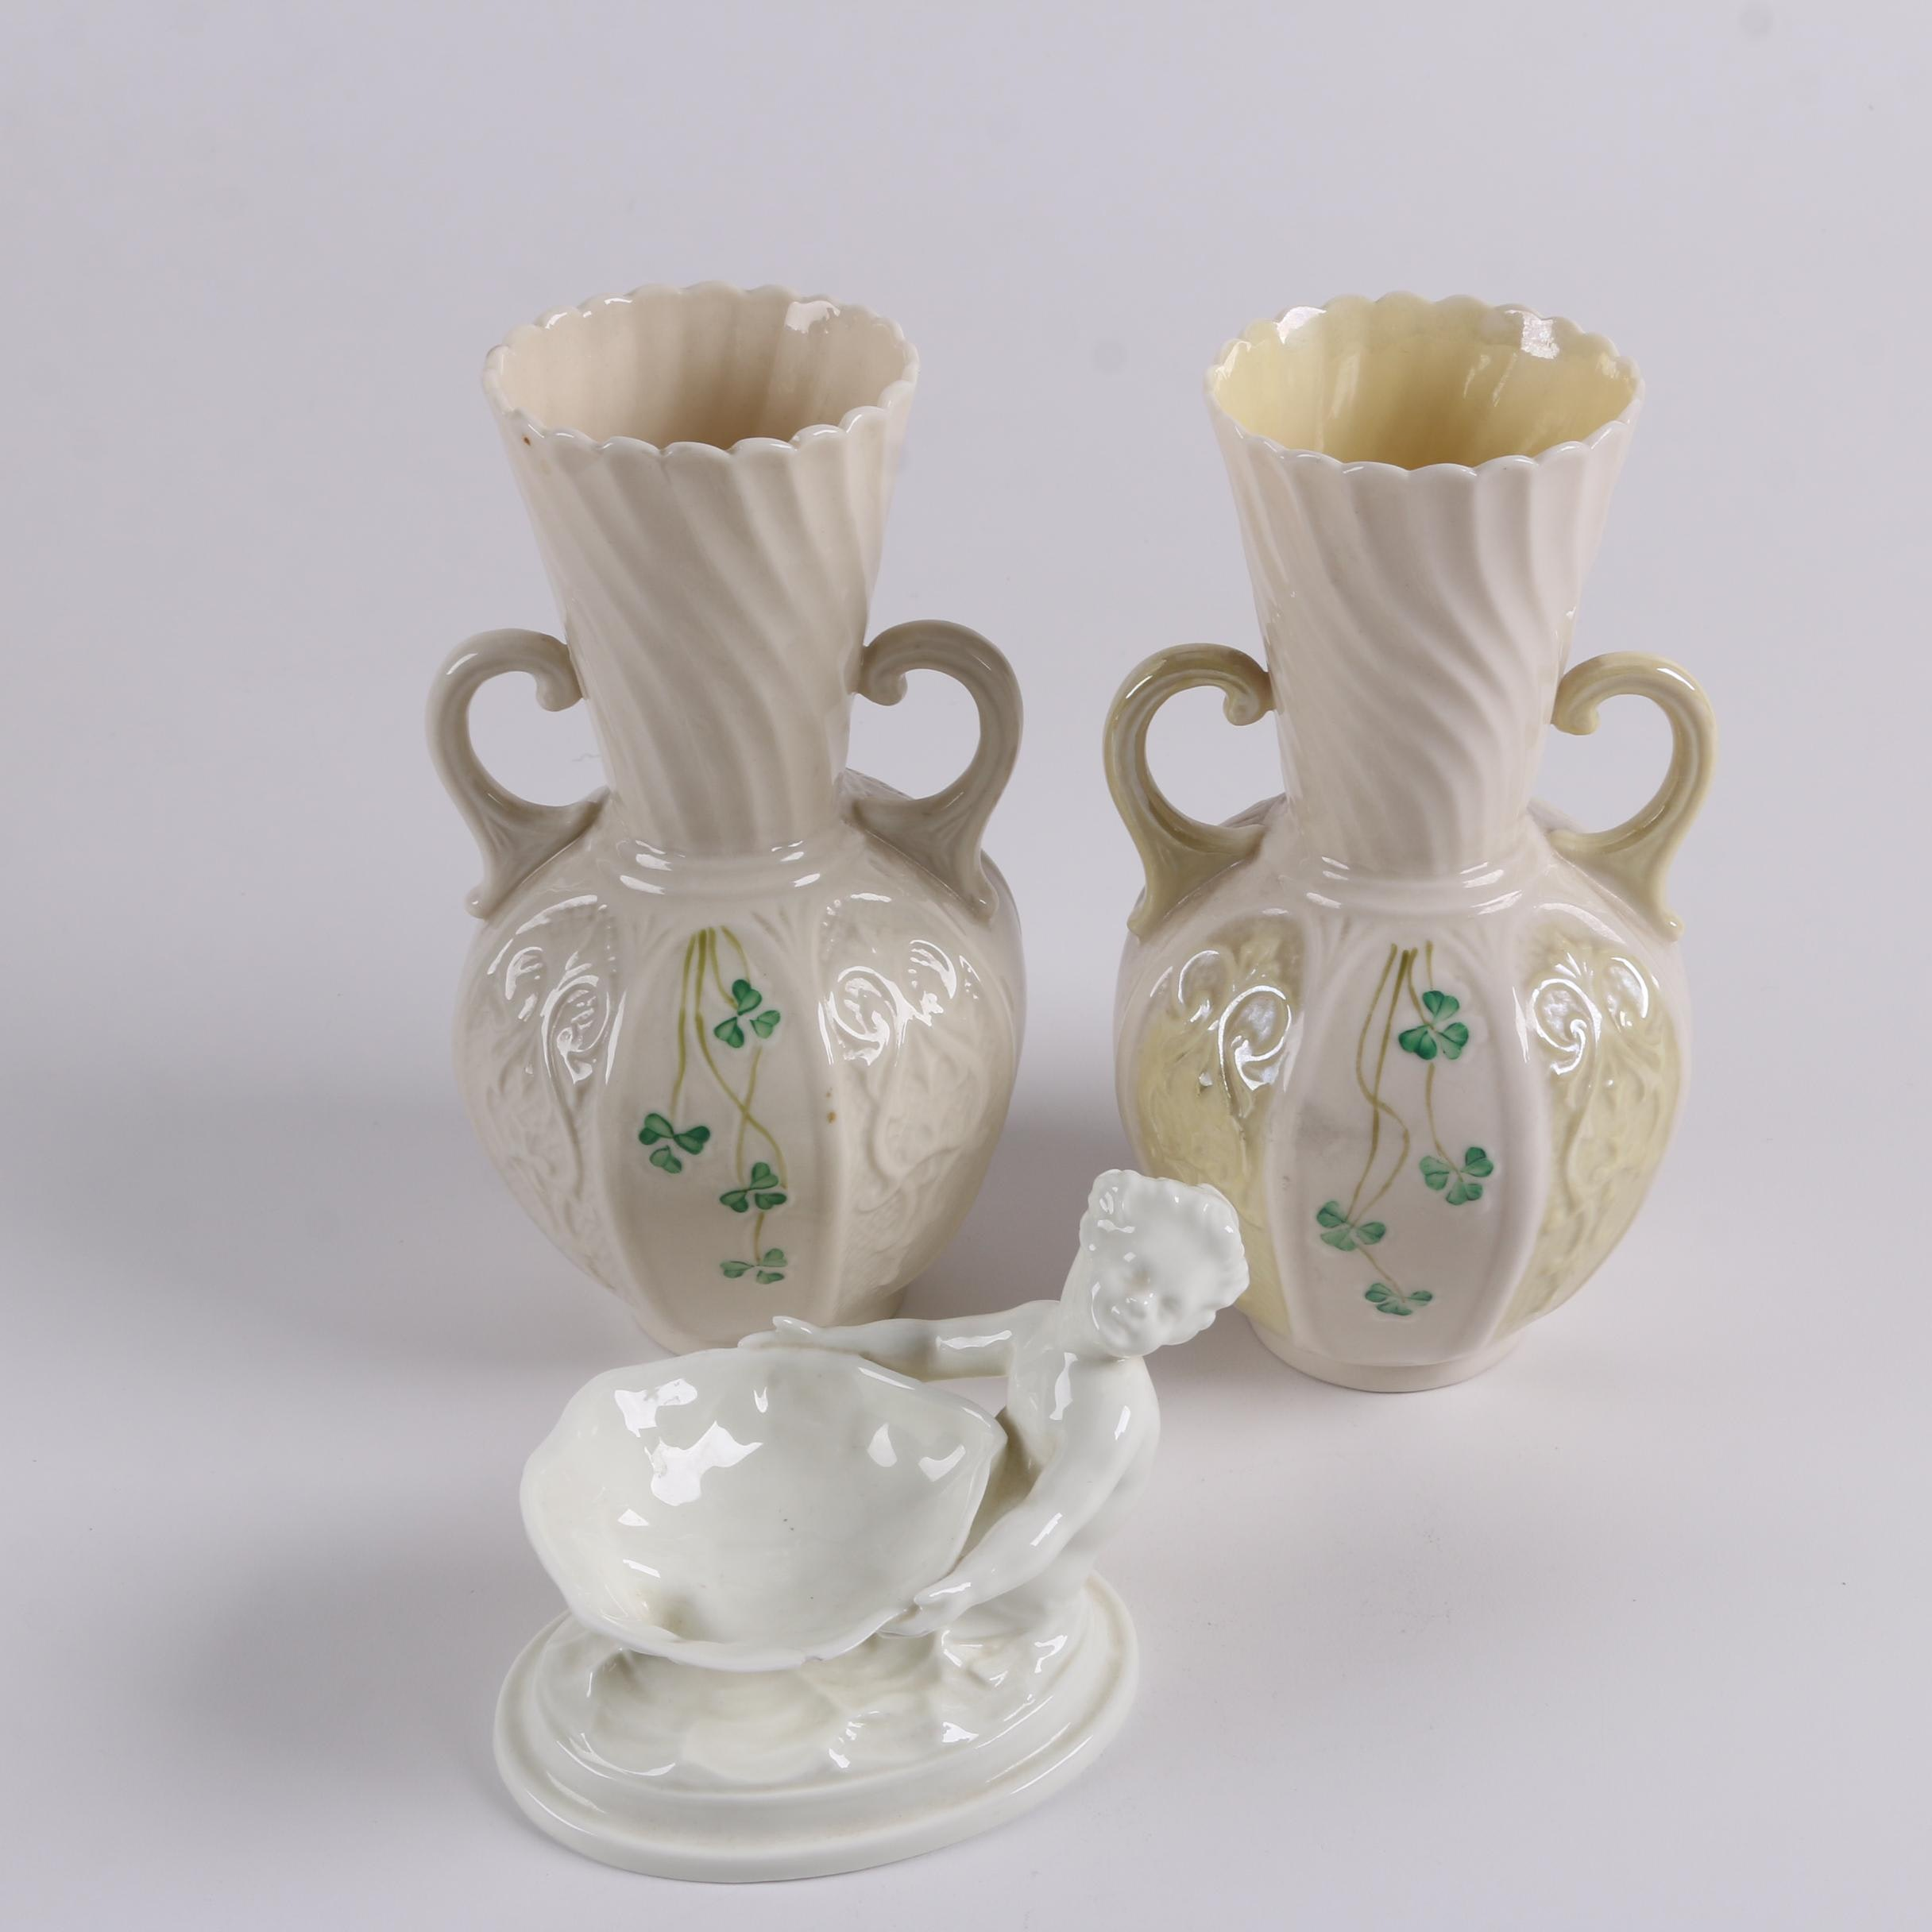 "Belleek Porcelain ""Shamrock"" Vases and Royal Worcester Mermaid Trinket Dish"